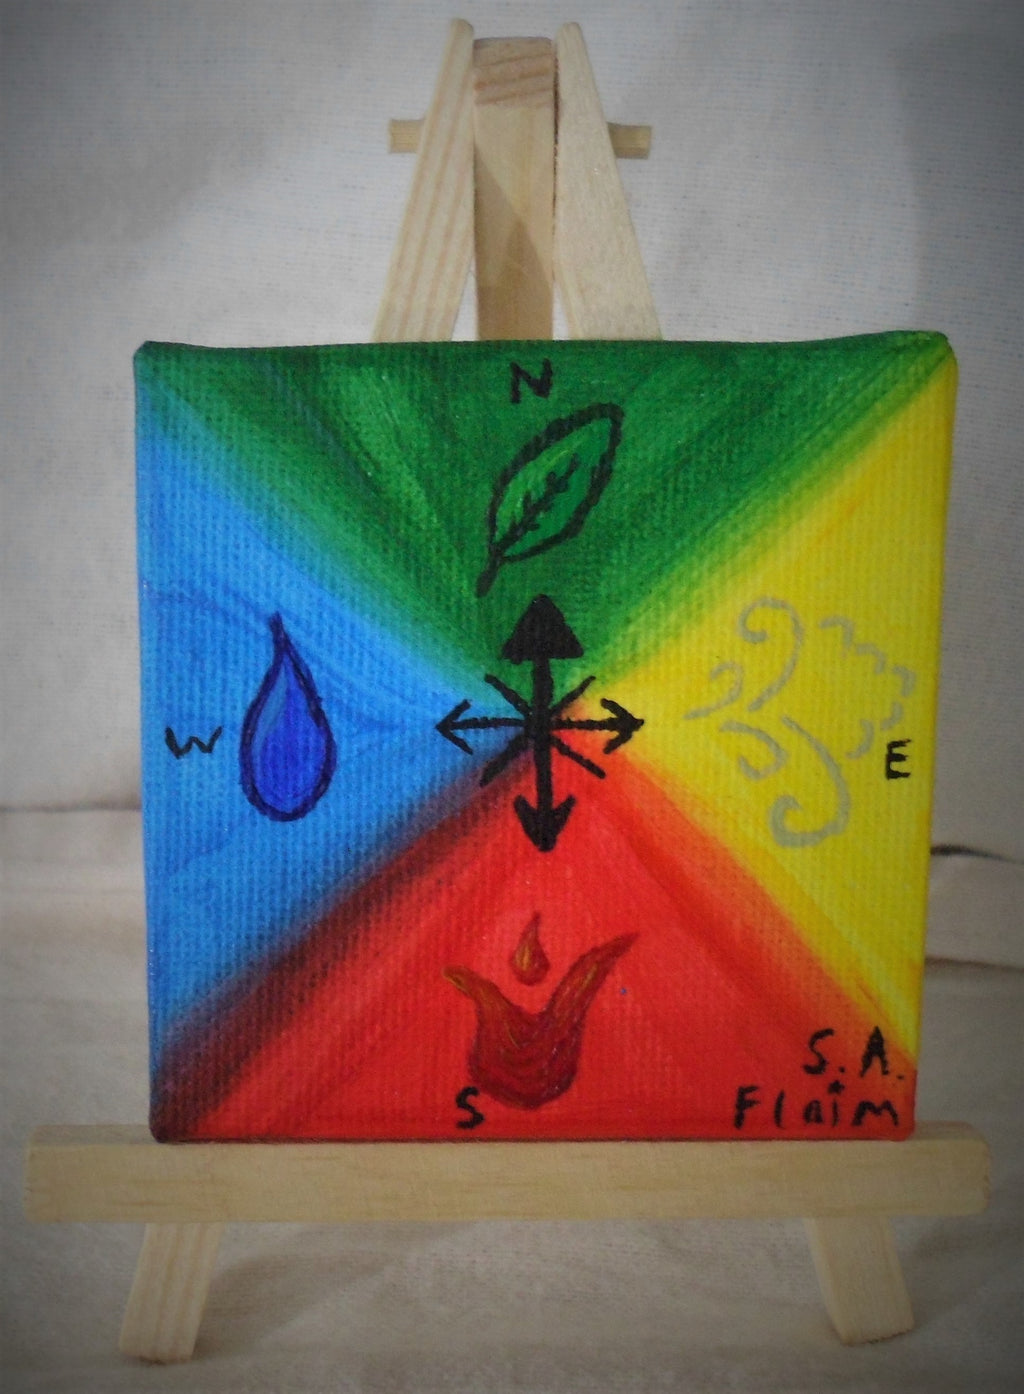 Elemental Compass Mini Easel Art by S.A.Flaim - Tully Crafts